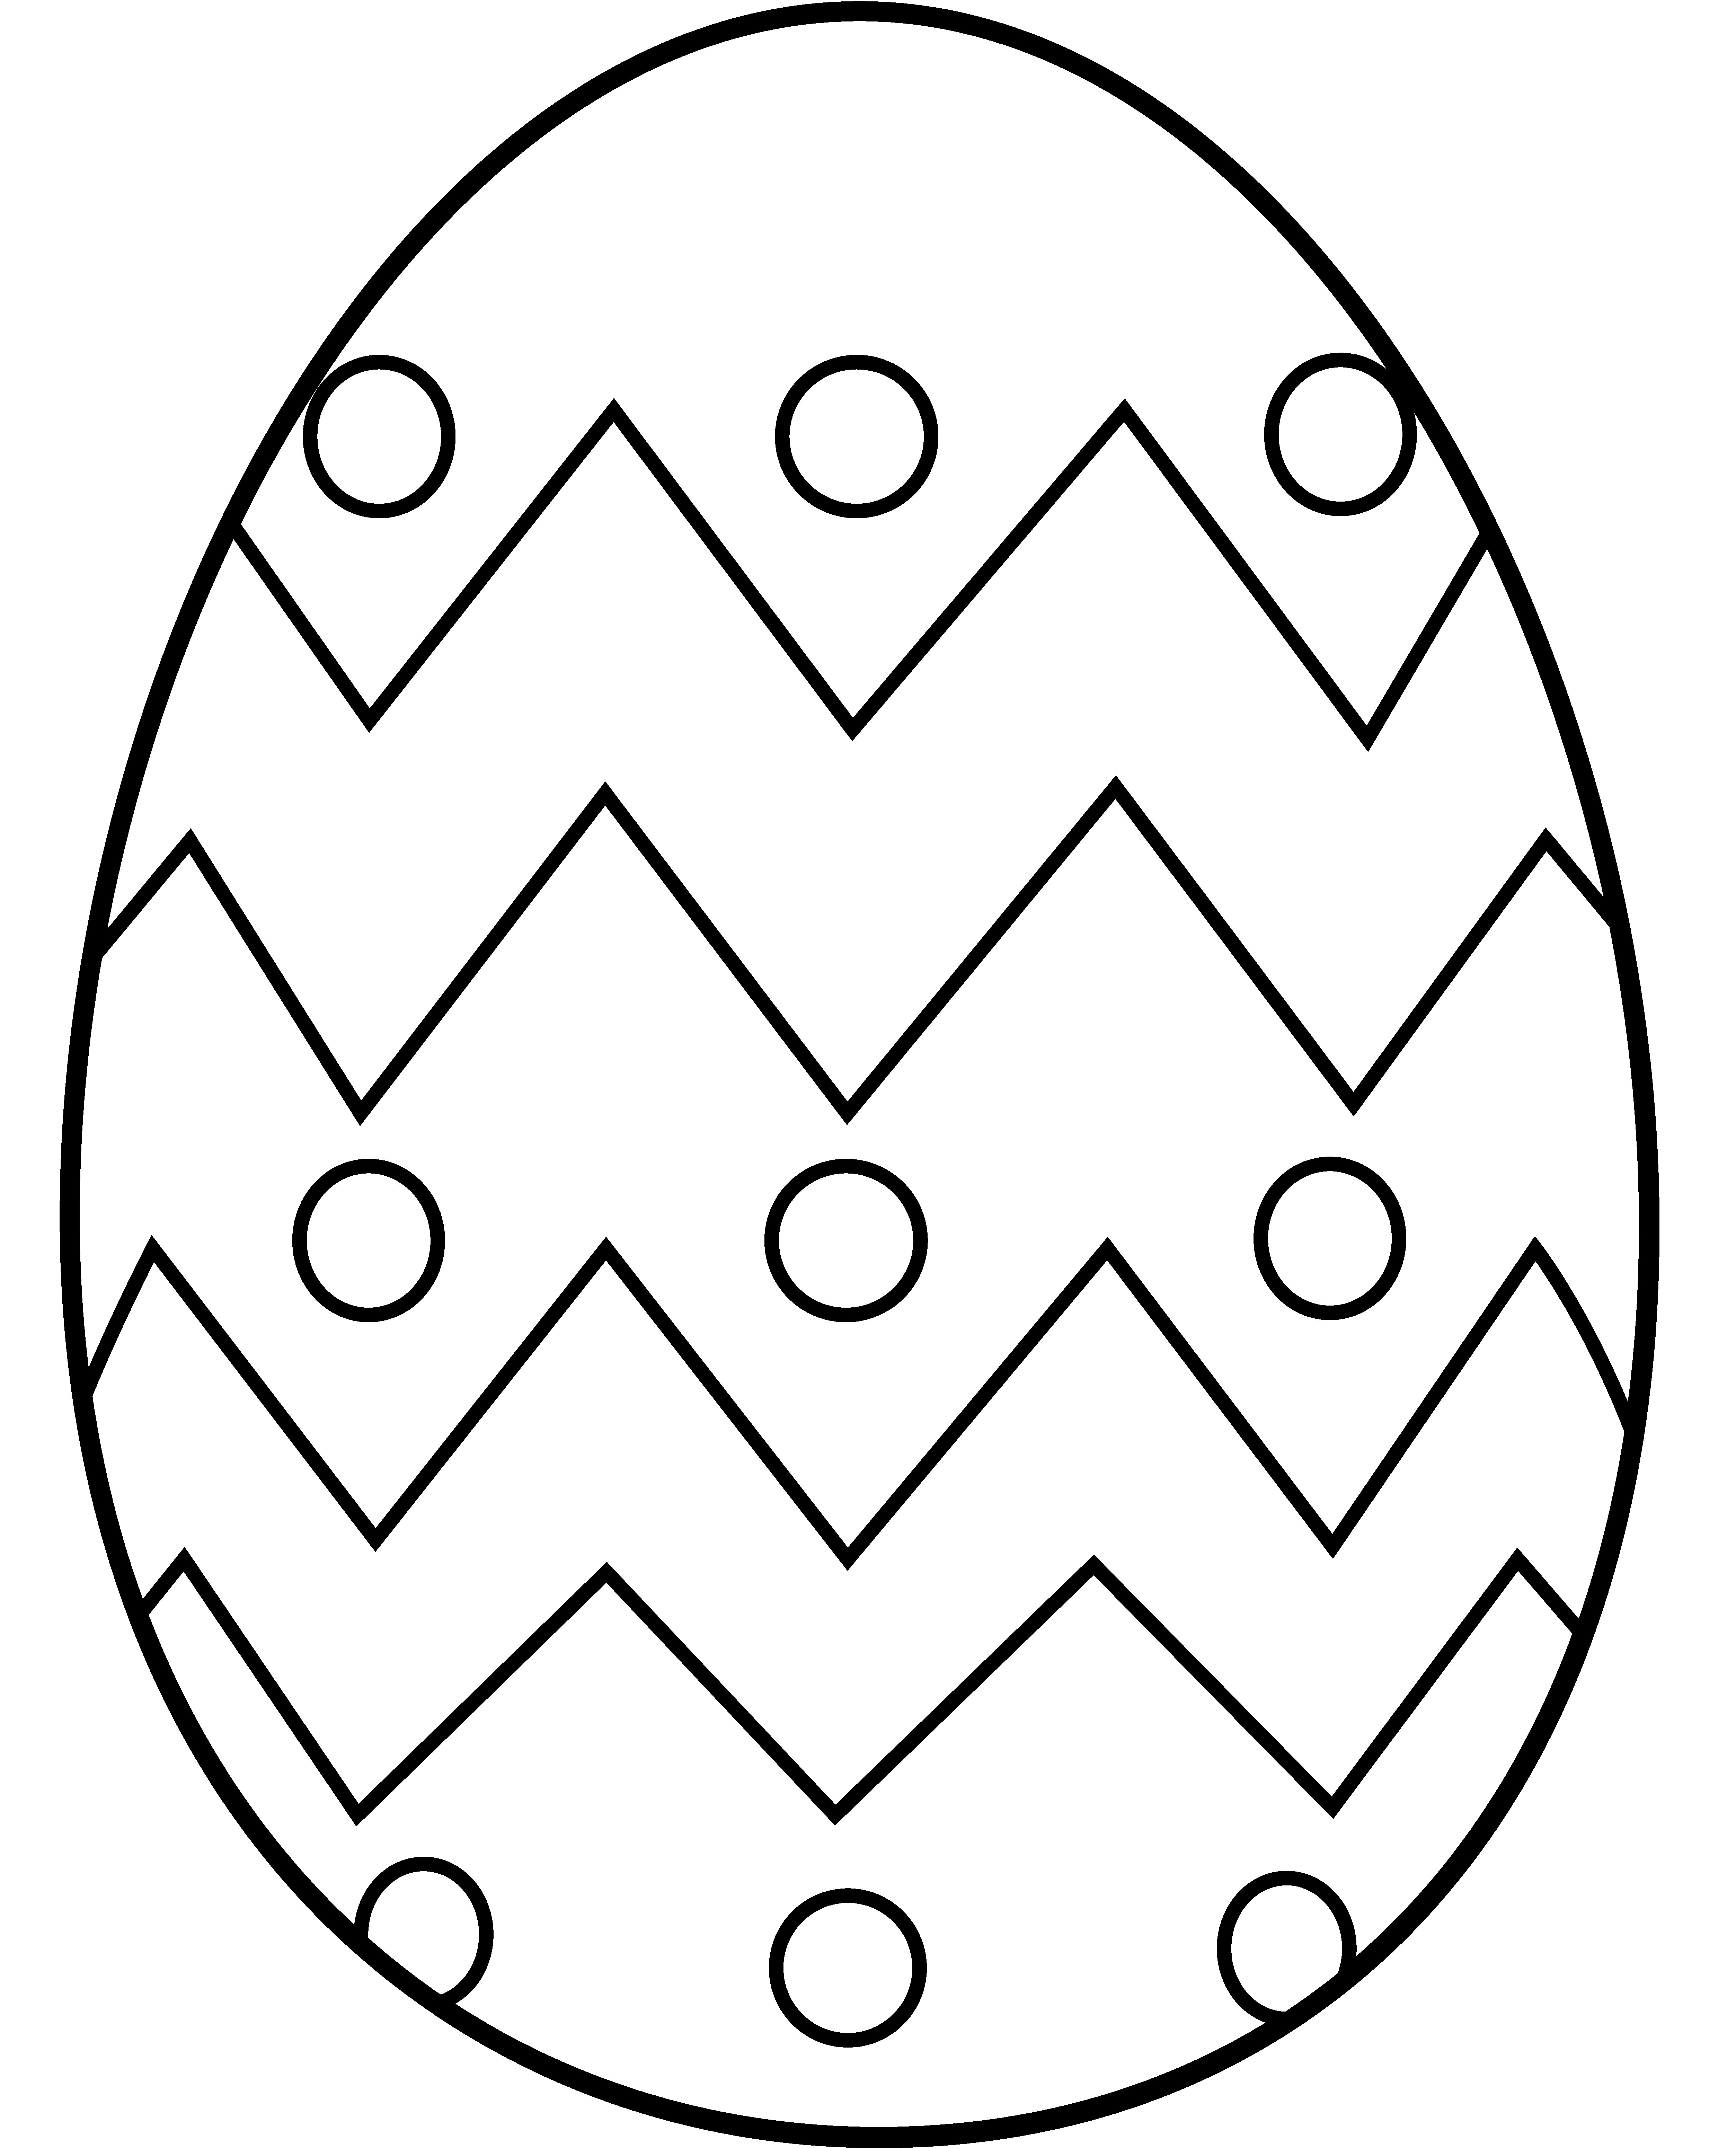 5012x6201 Egg Coloring Page Easter Eggs Pages For Kids Elegant